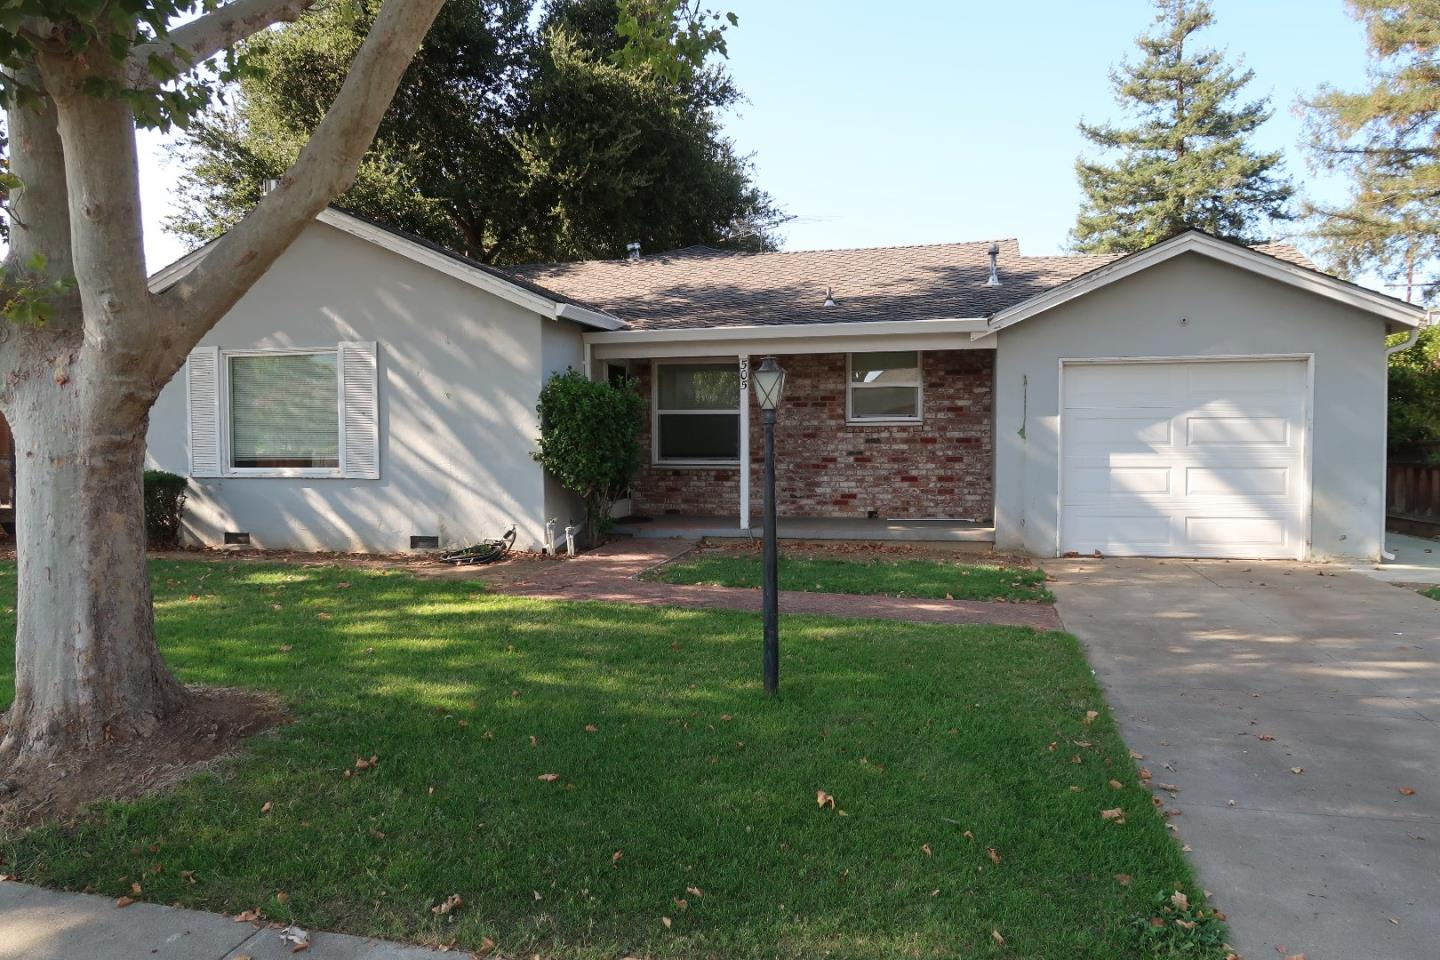 Single Family Home for Rent at 505 Broadway 505 Broadway Gilroy, California 95020 United States